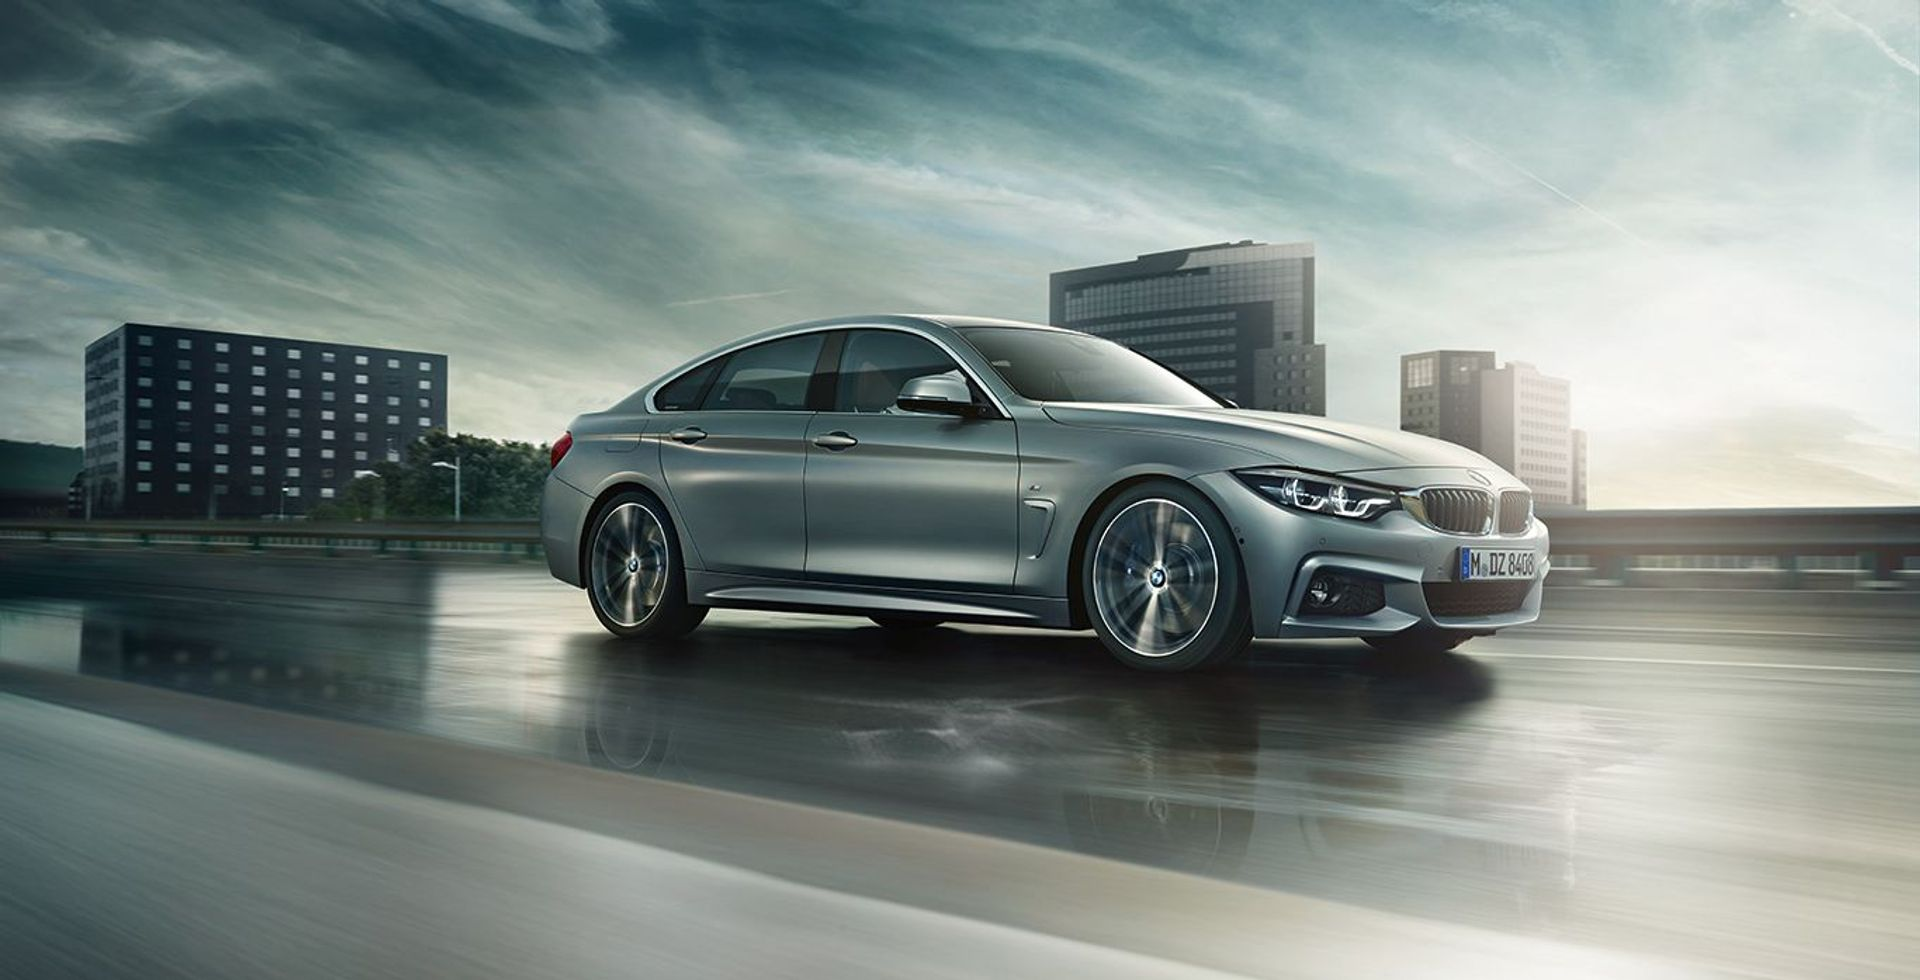 BMW 4 Series Gran Coupe 420i image